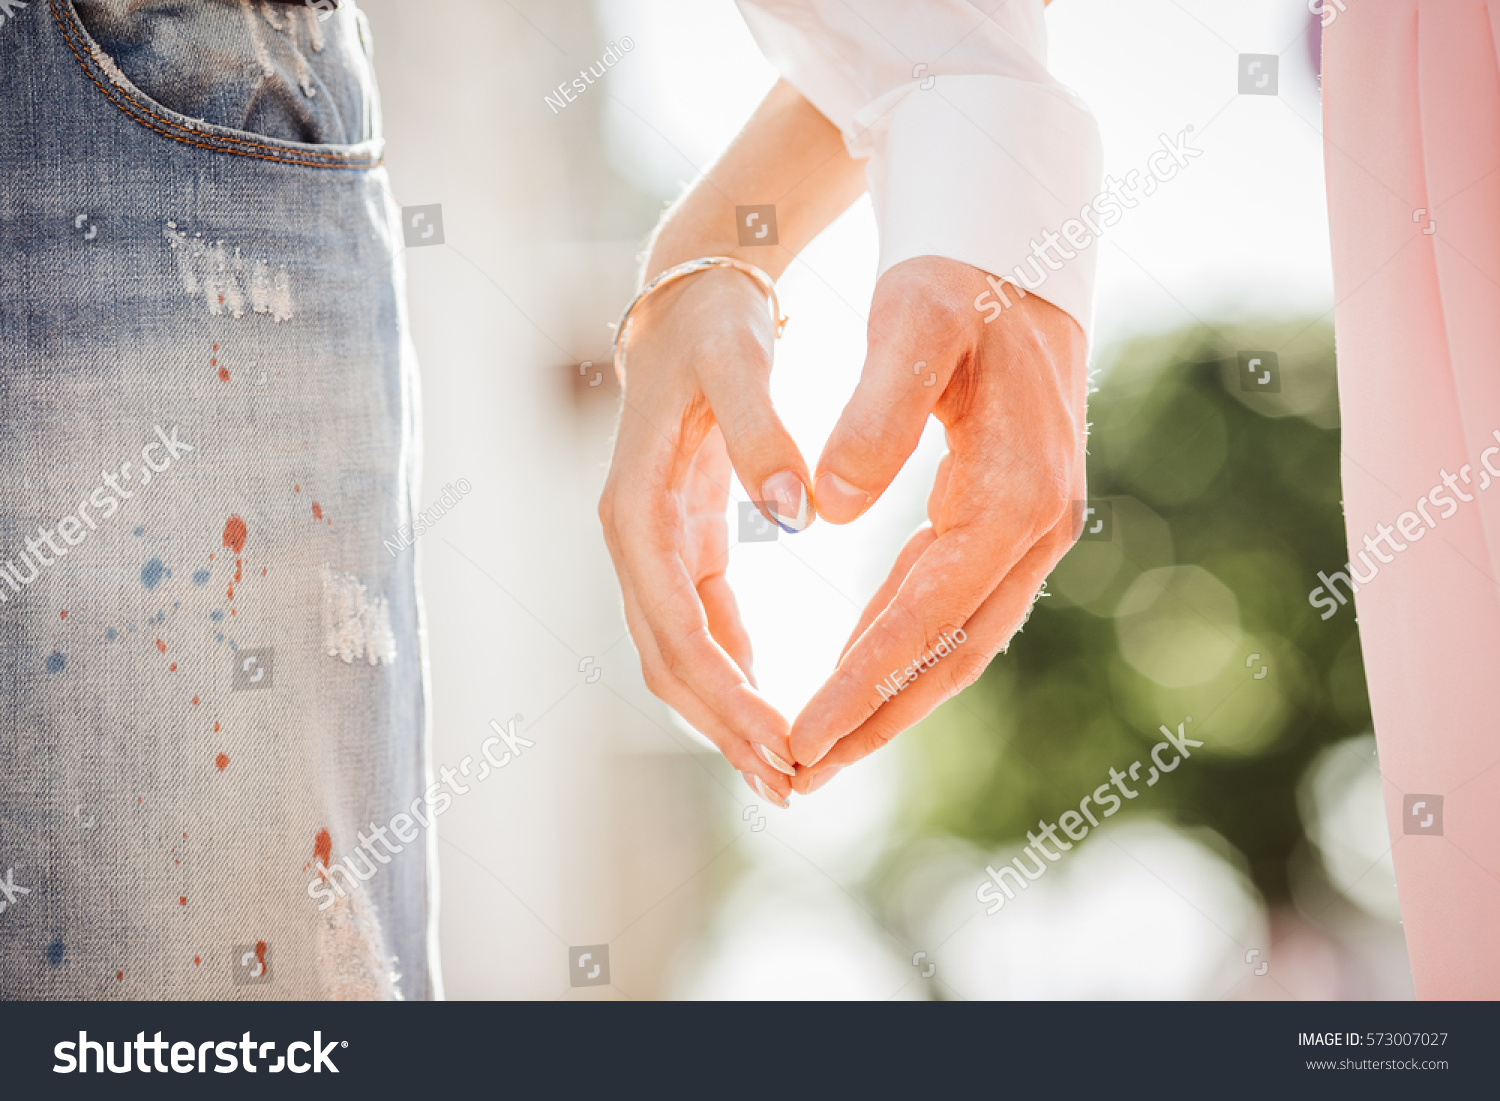 Mans Hand Hold By Girl Hand Stock Photo 573007027 - Shutterstock